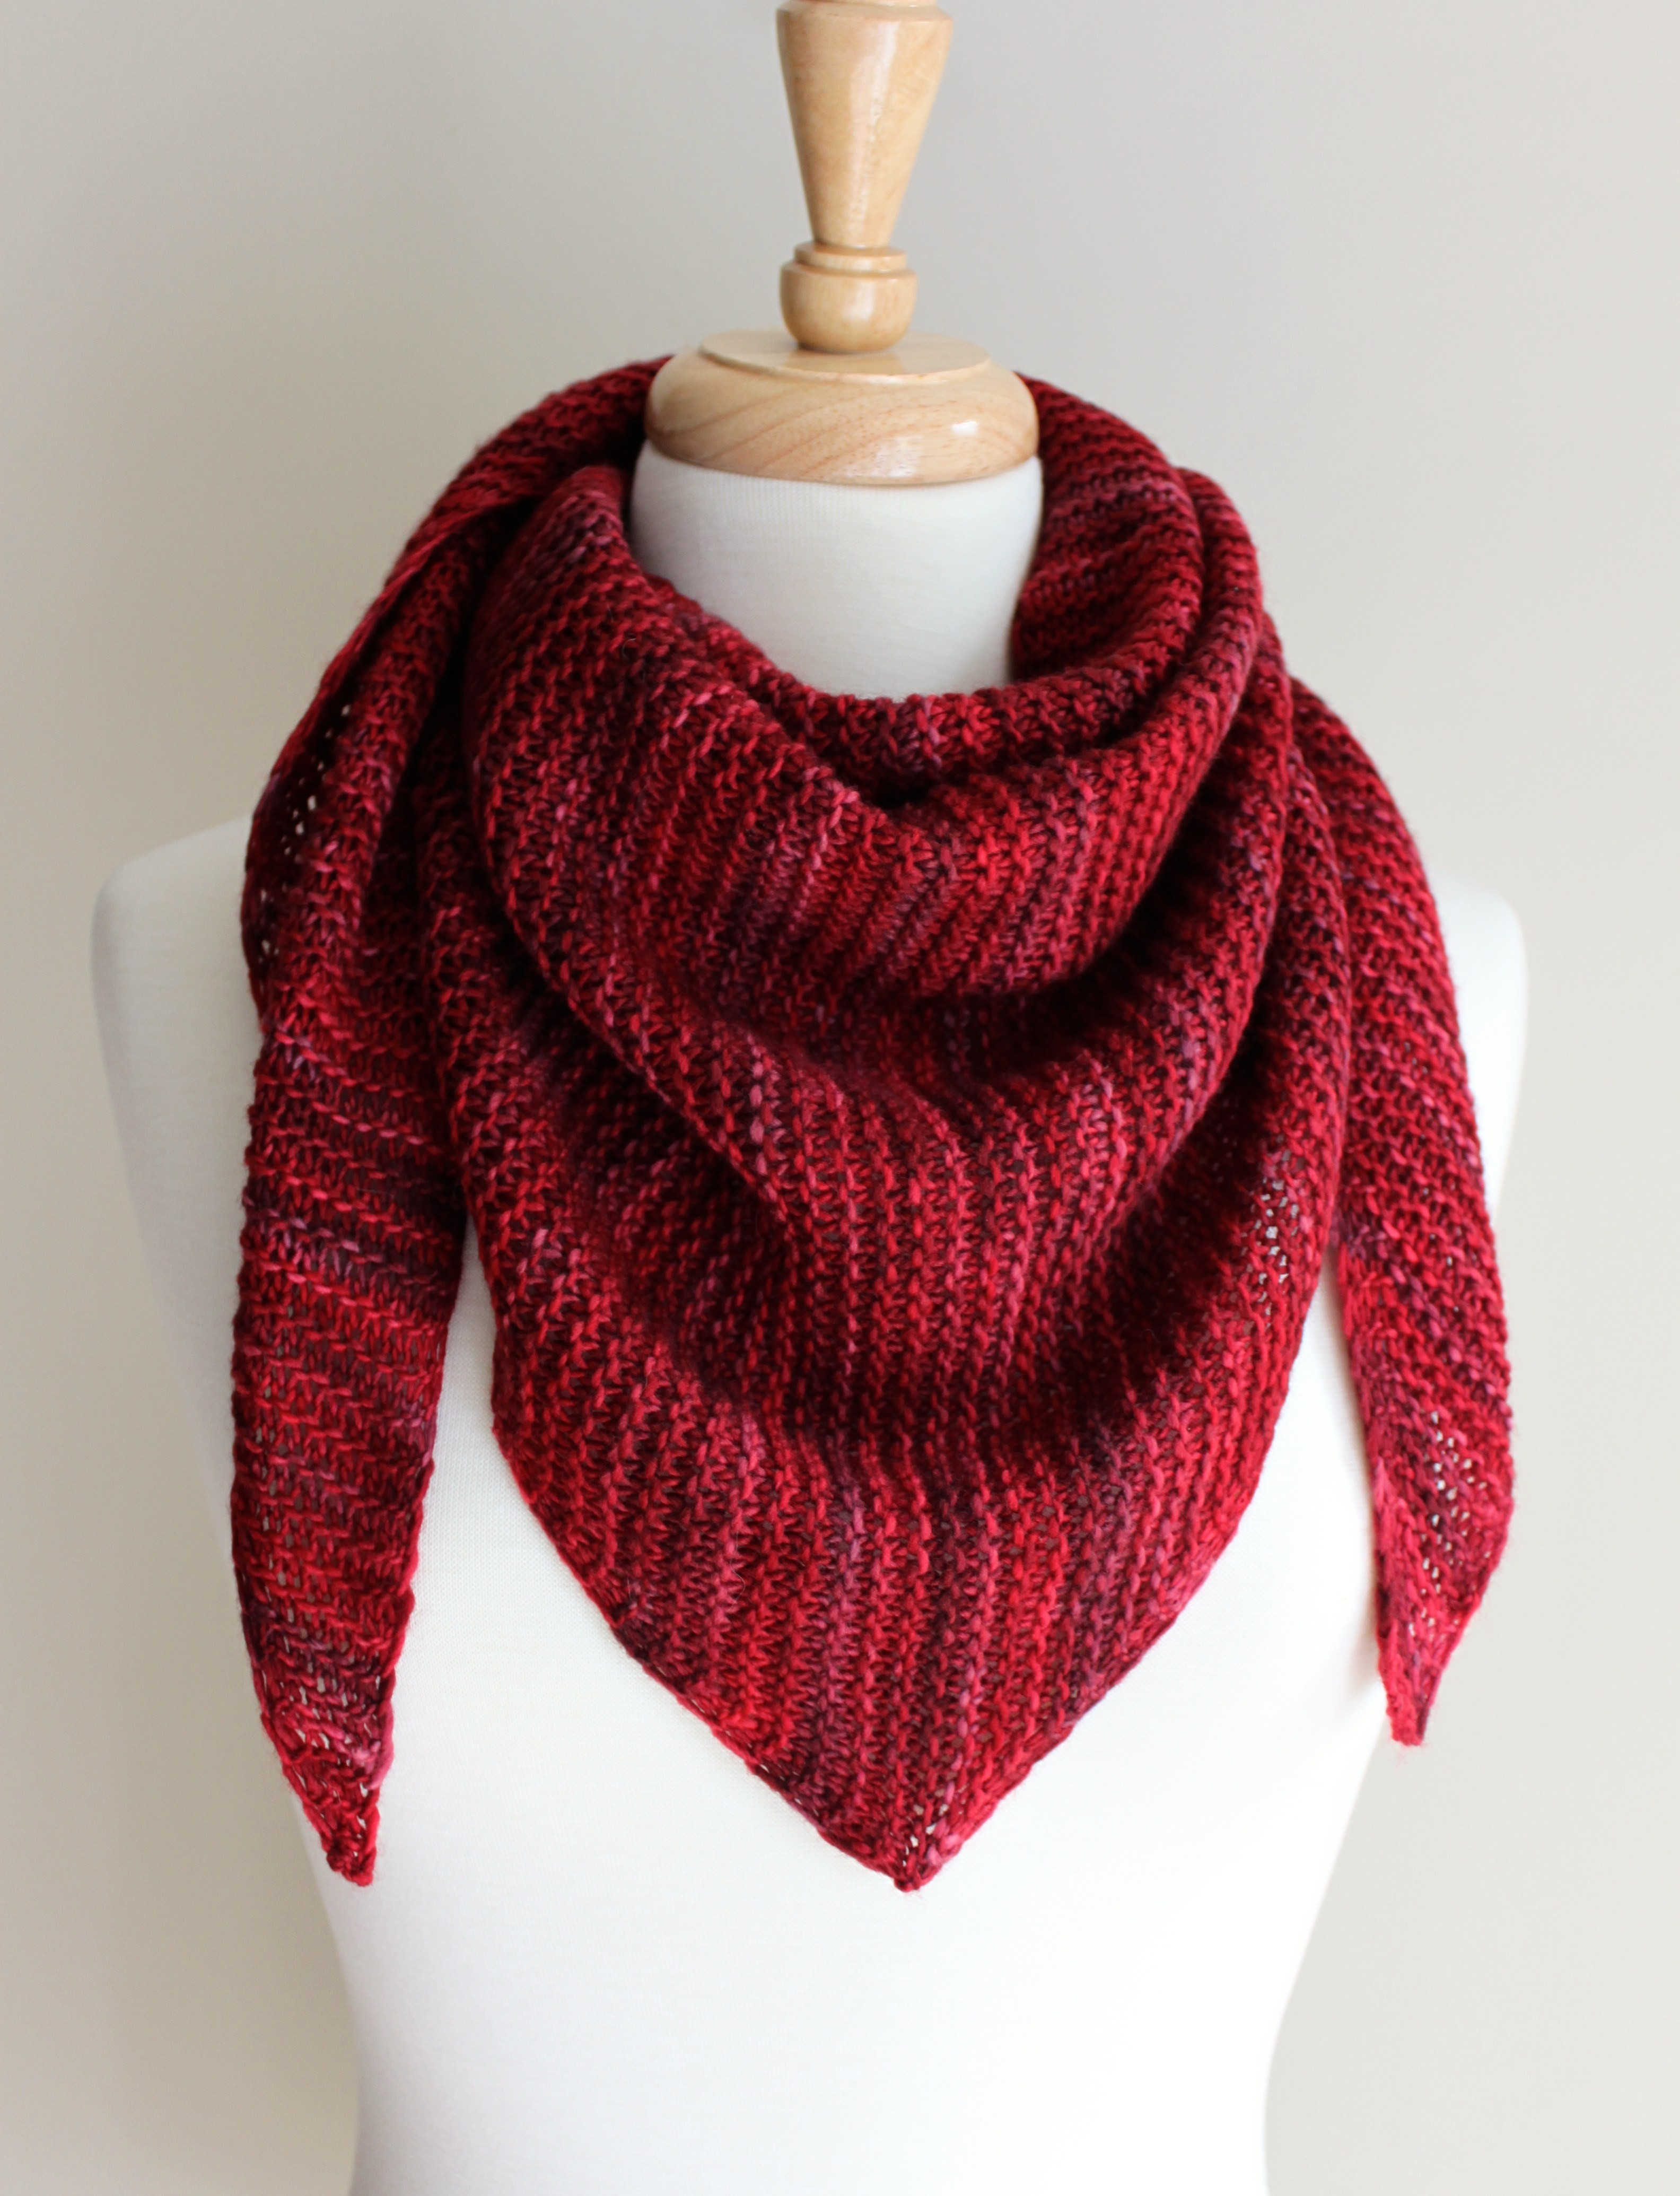 New Free Knitting Patterns Truly Triangular Scarf Leah Easy Knit Scarf Of Marvelous 48 Photos Easy Knit Scarf